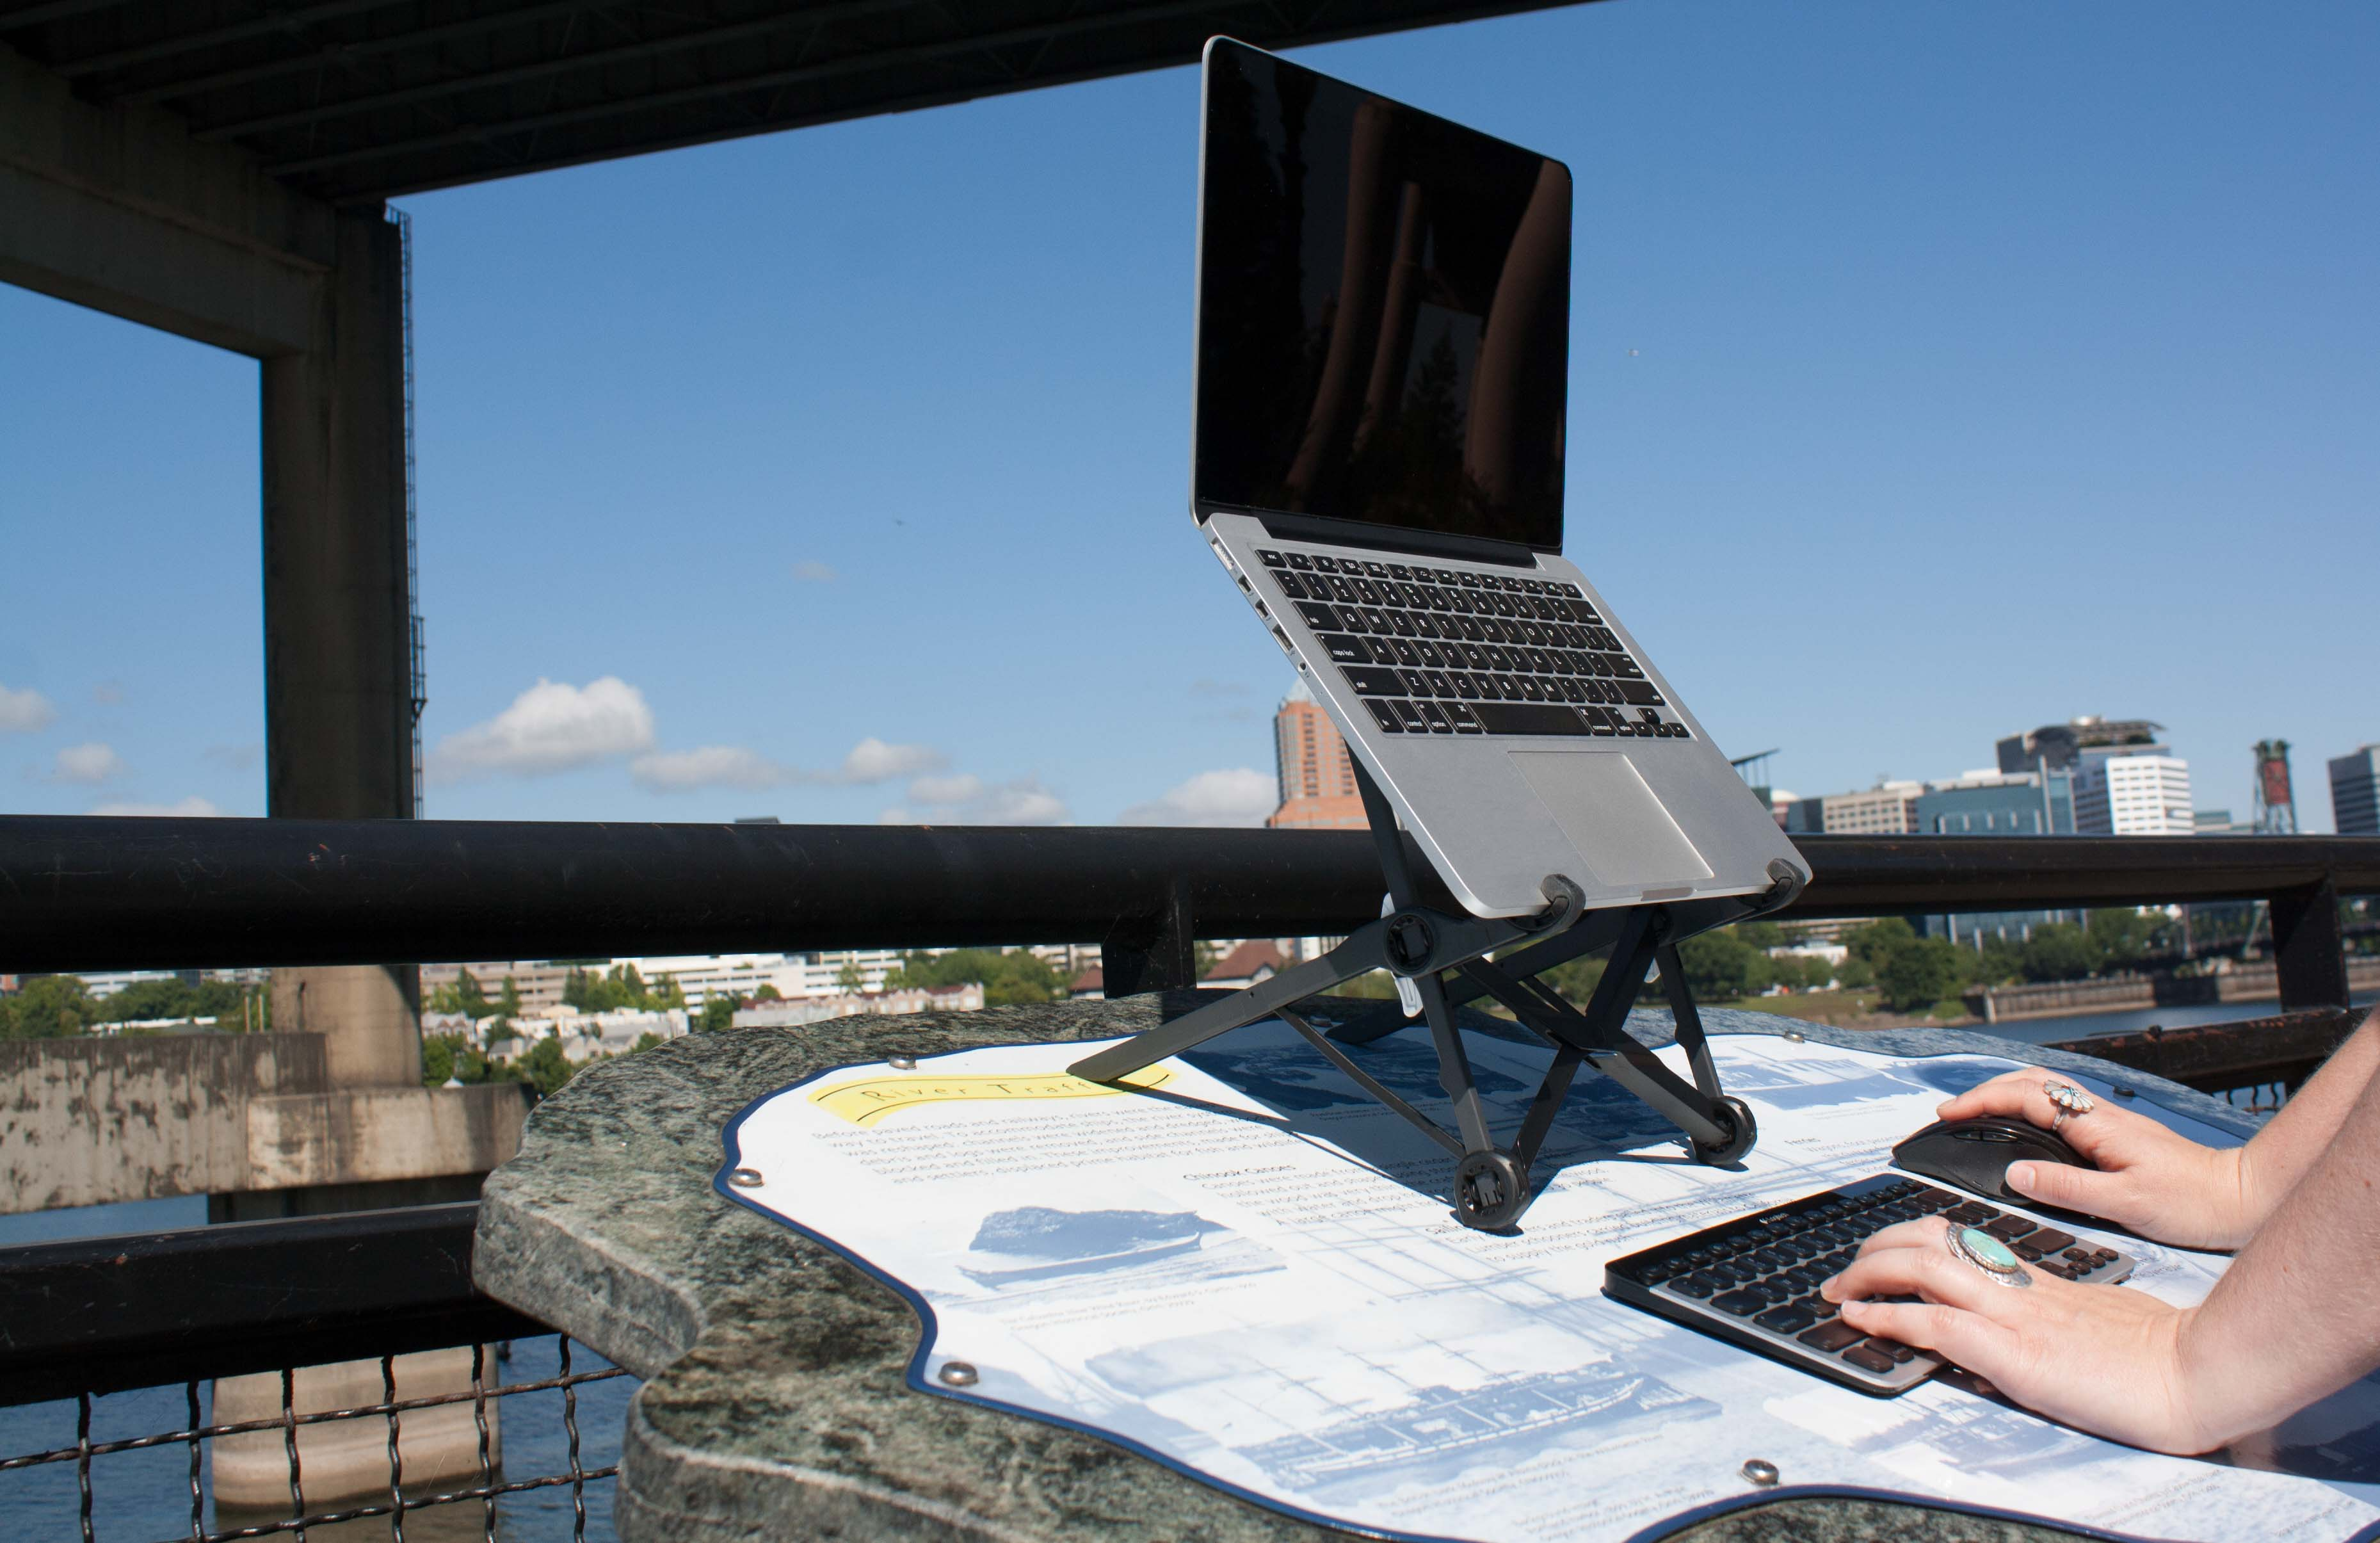 A hand works on a laptop on a roost outside